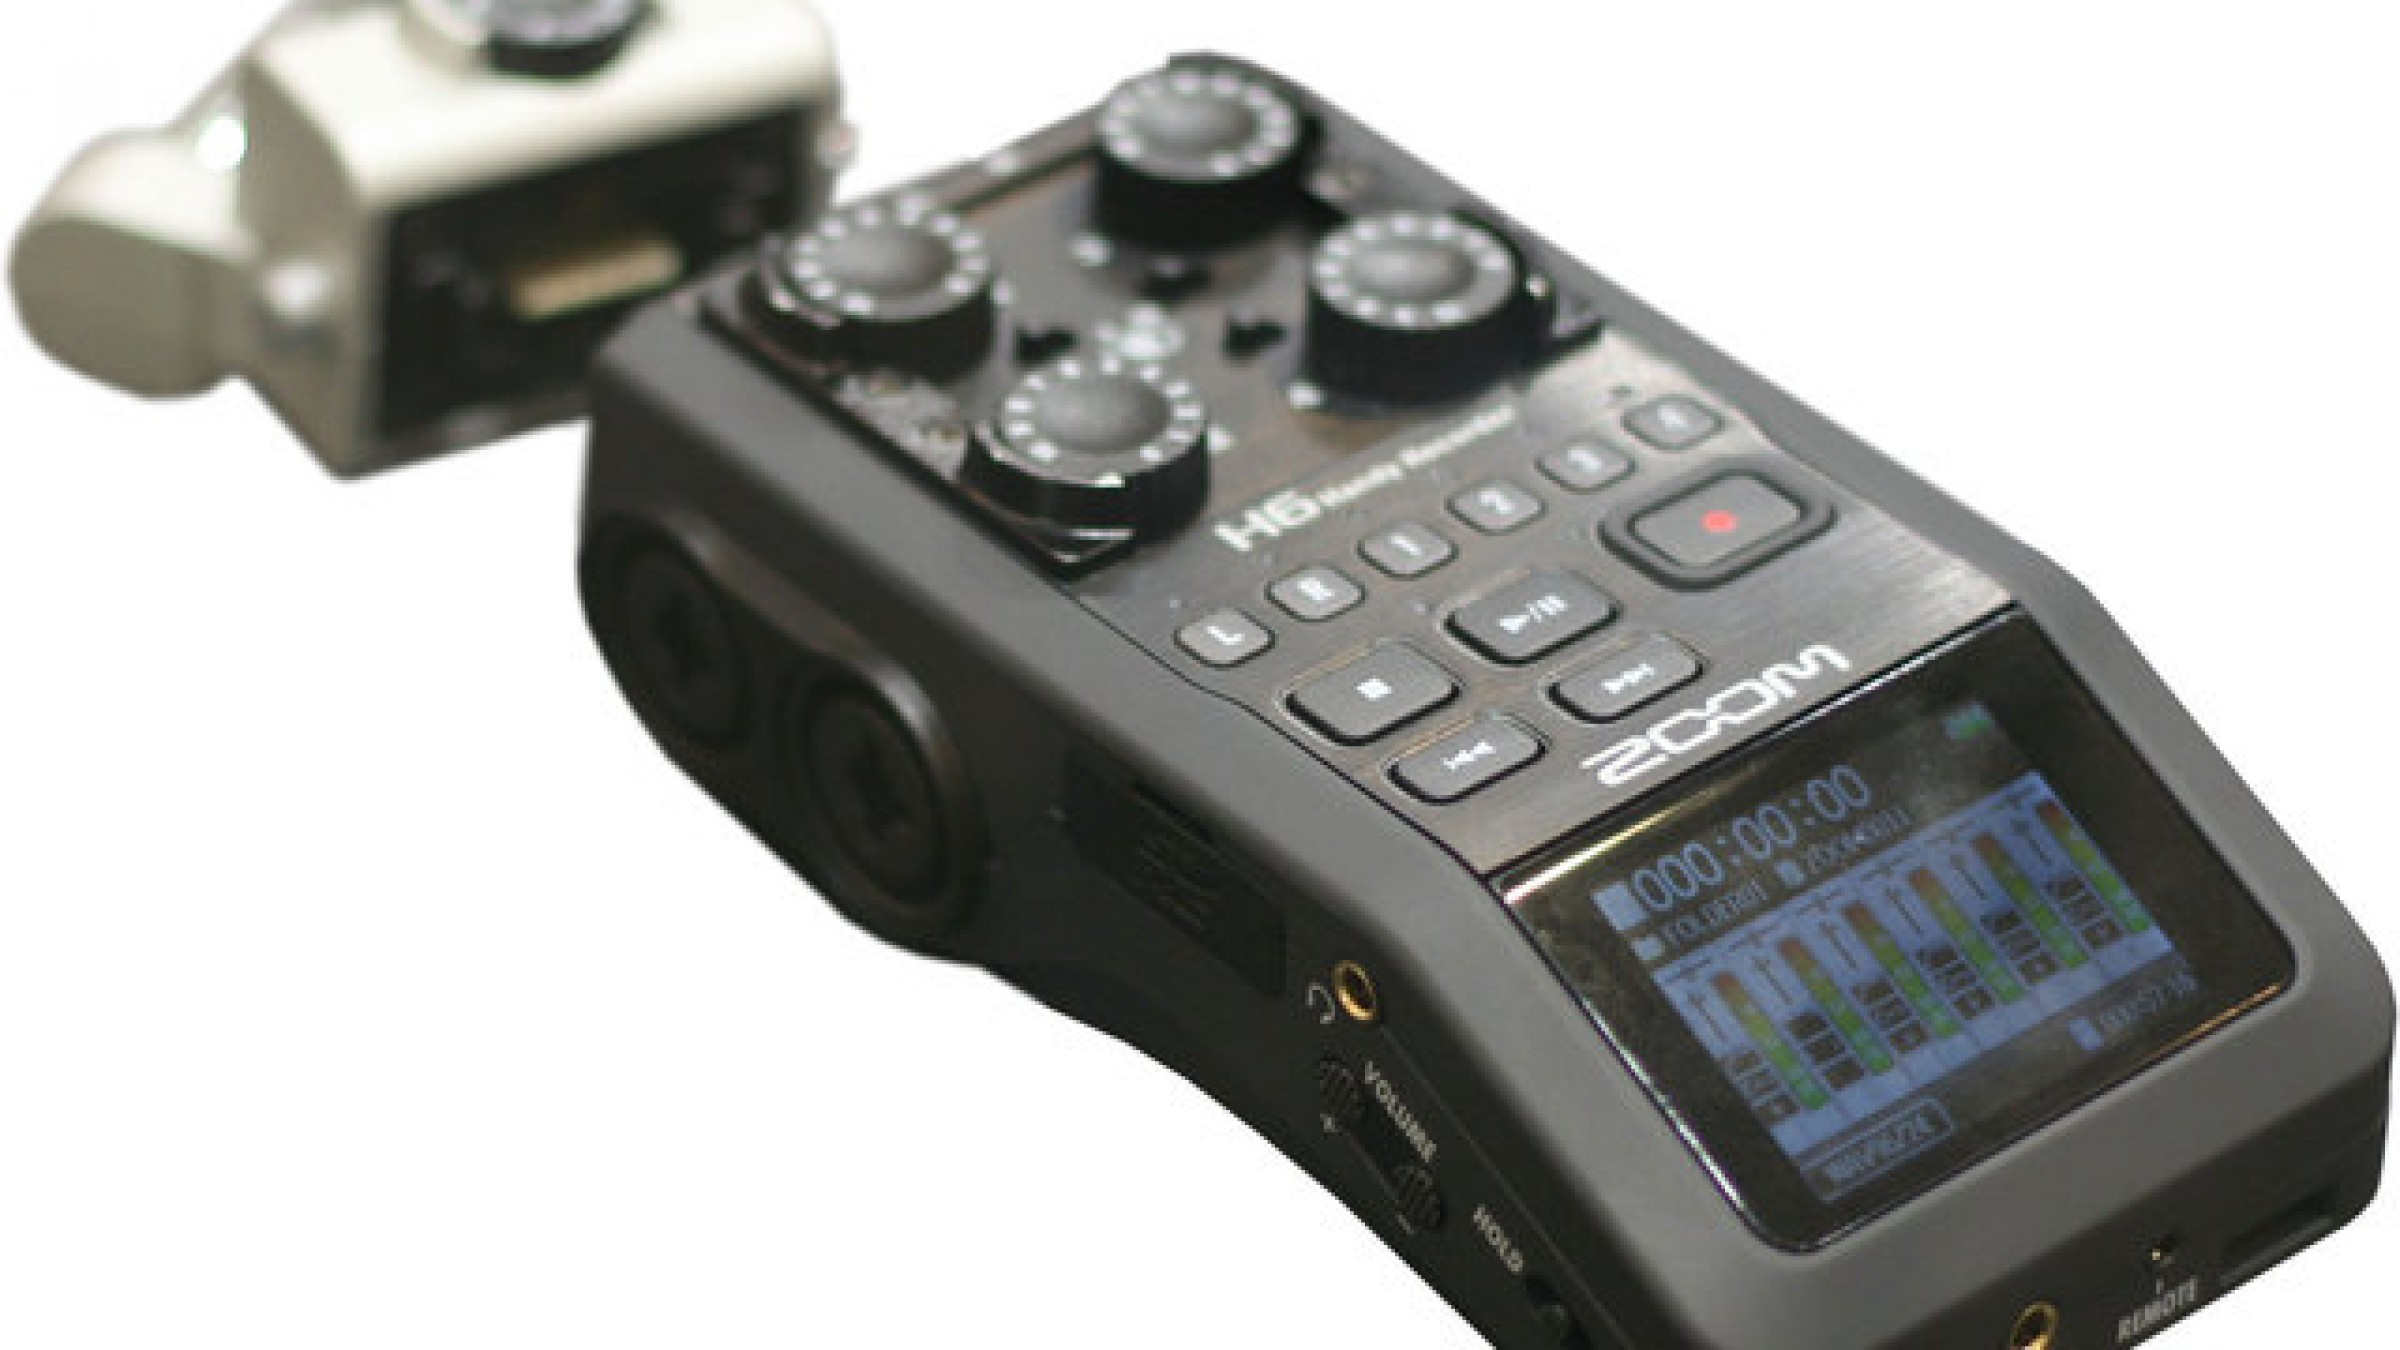 Zoom Announces H6 Audio Recorder, Modular Big Brother to the H4N and Serious Tool for Filmmakers